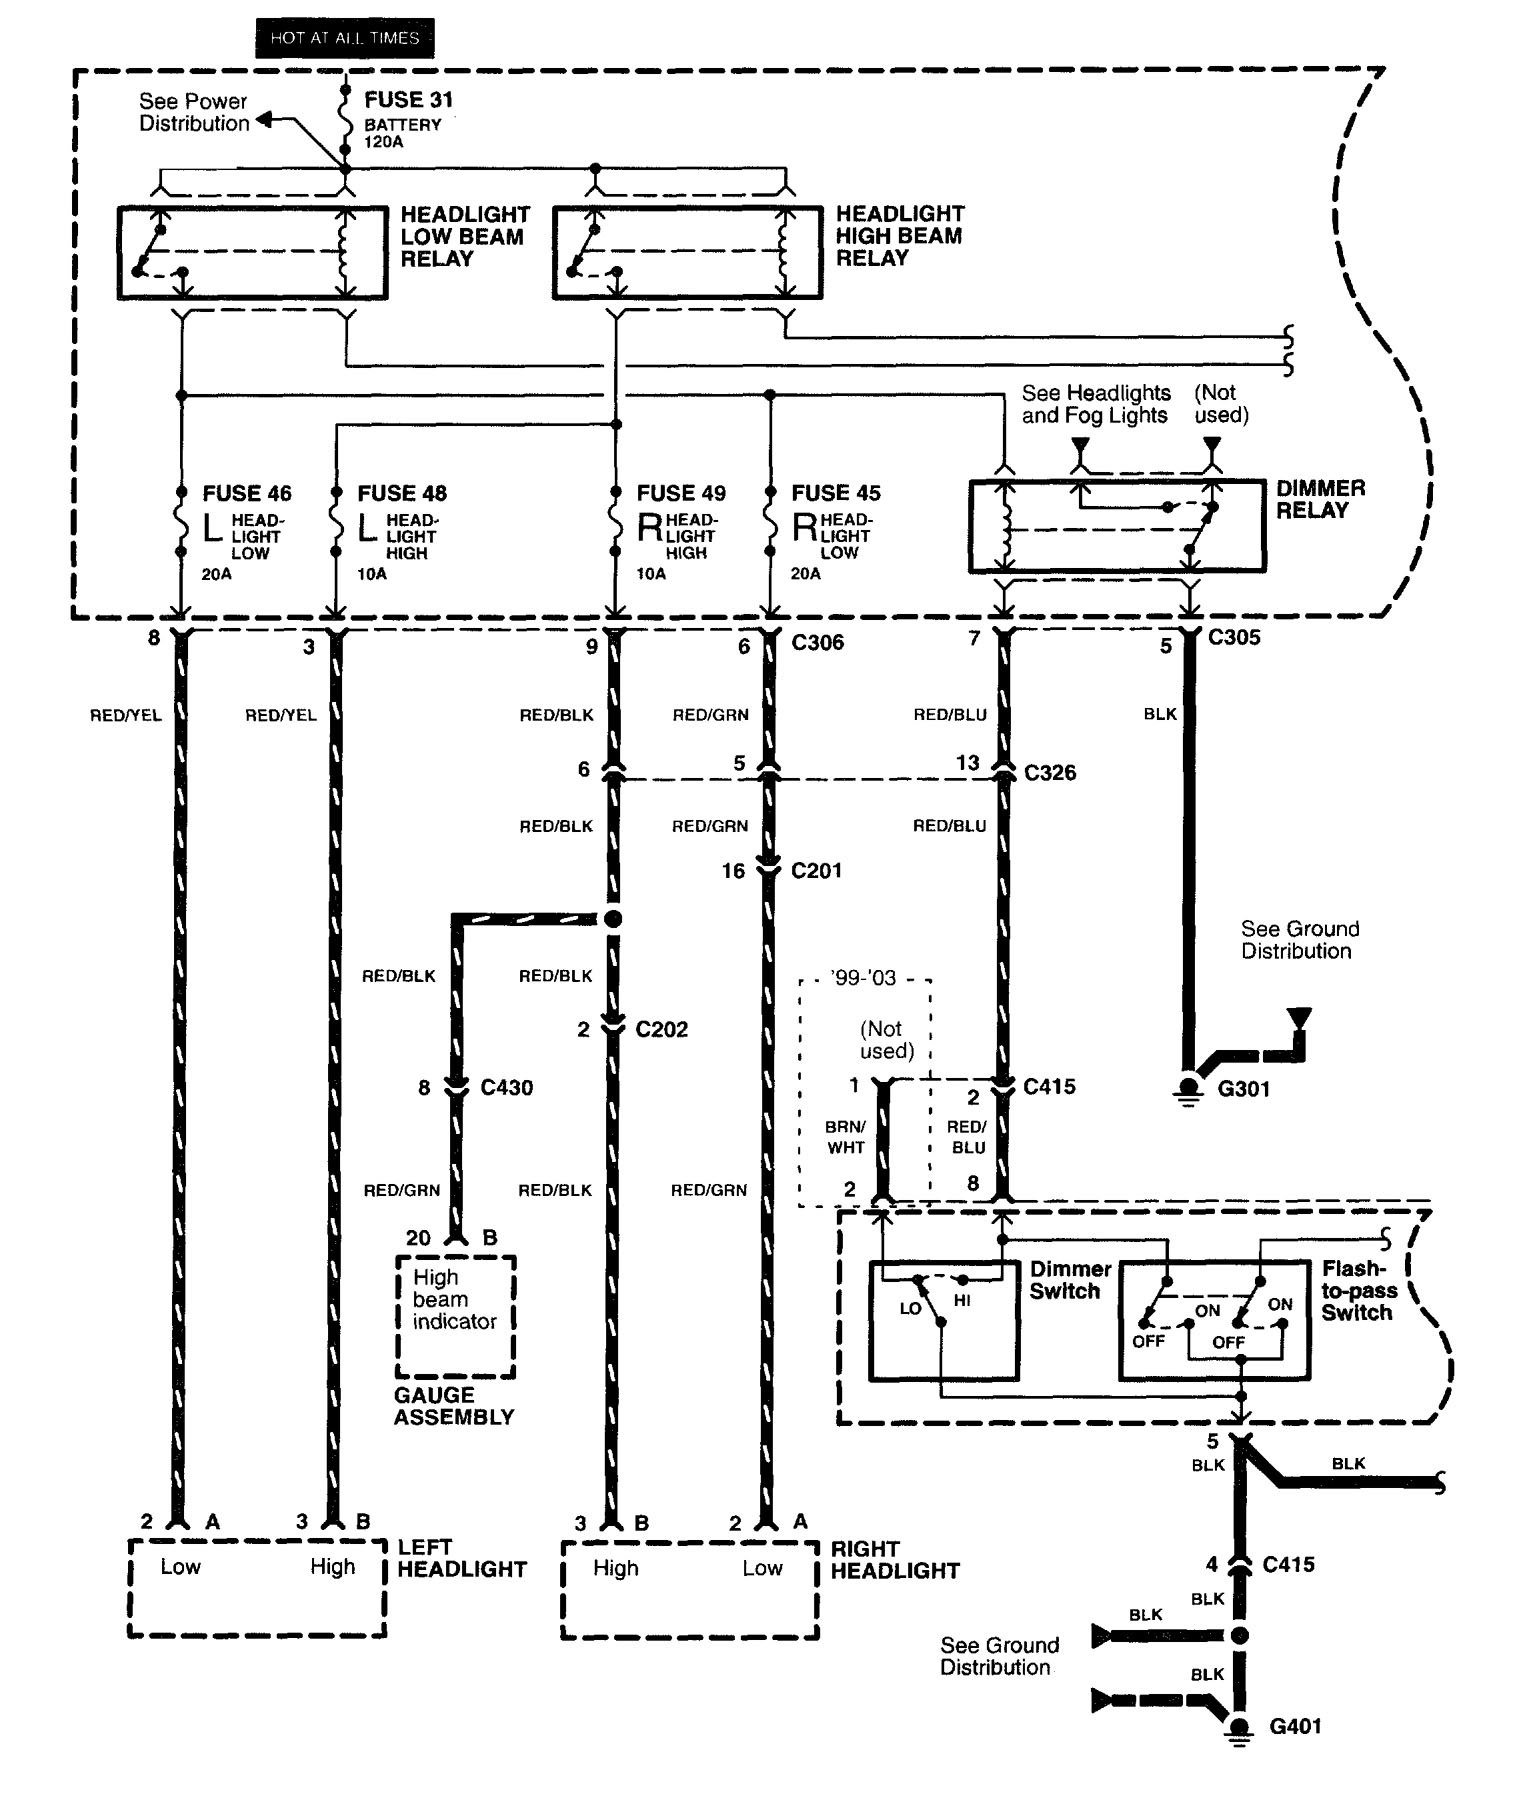 Wiring Diagram 2006 Acura Rl 28 Wiring Diagram Images - Auto ... on acura rl transmission problems, acura rl dash warning lights, acura legend wiring diagram, 2001 acura tl wiring diagram, acura mdx wiring diagram, acura rl headlight bulb replacement, acura rsx wiring diagram, acura rl parts diagram, acura rl starting problems, acura cl wiring diagram, acura integra wiring diagram, acura rl engine diagram,